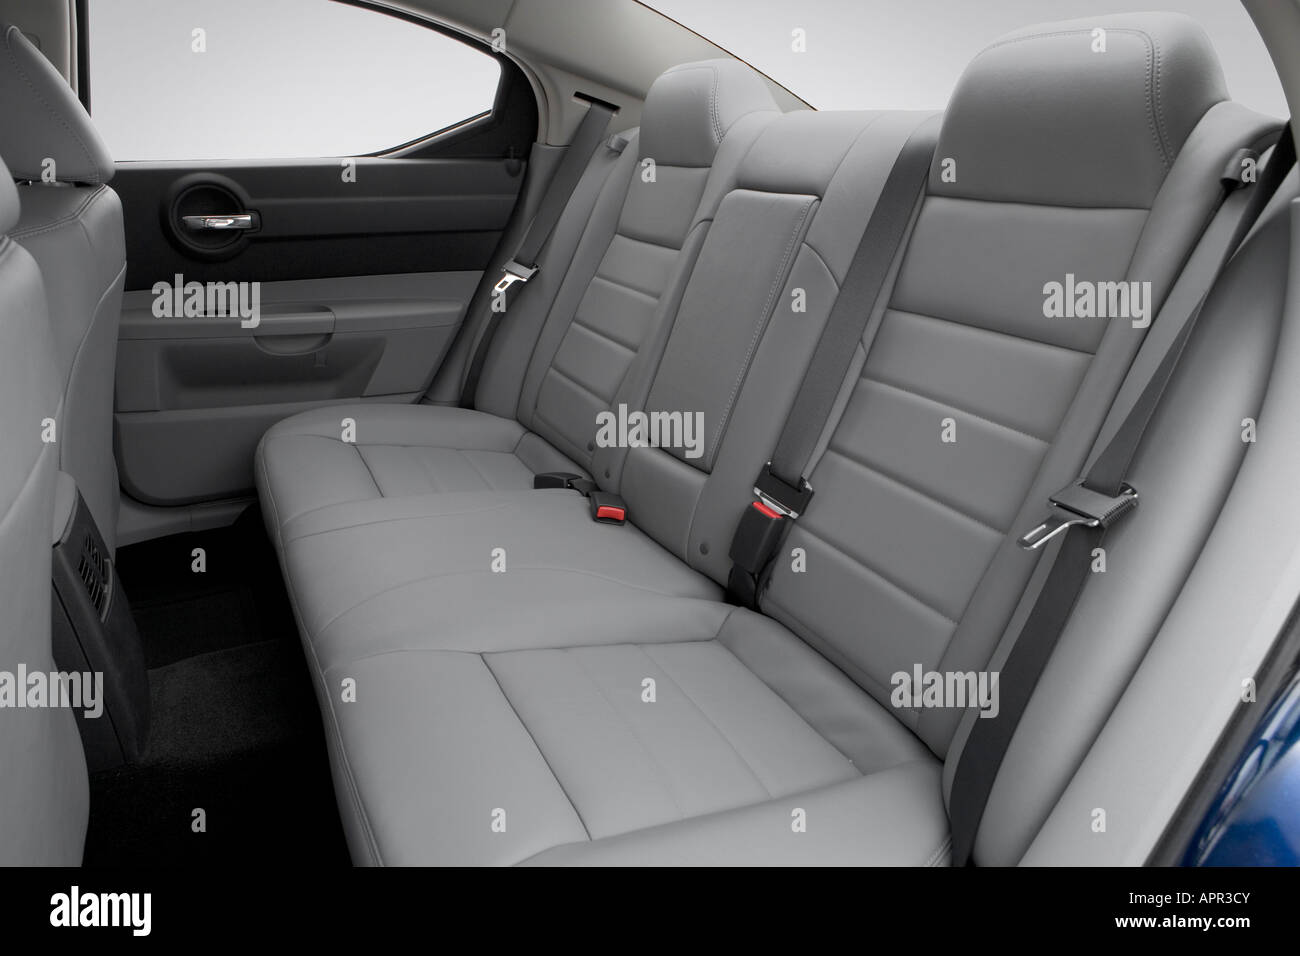 2006 Dodge Charger Sxt In Blue Rear Seats Stock Photo Alamy